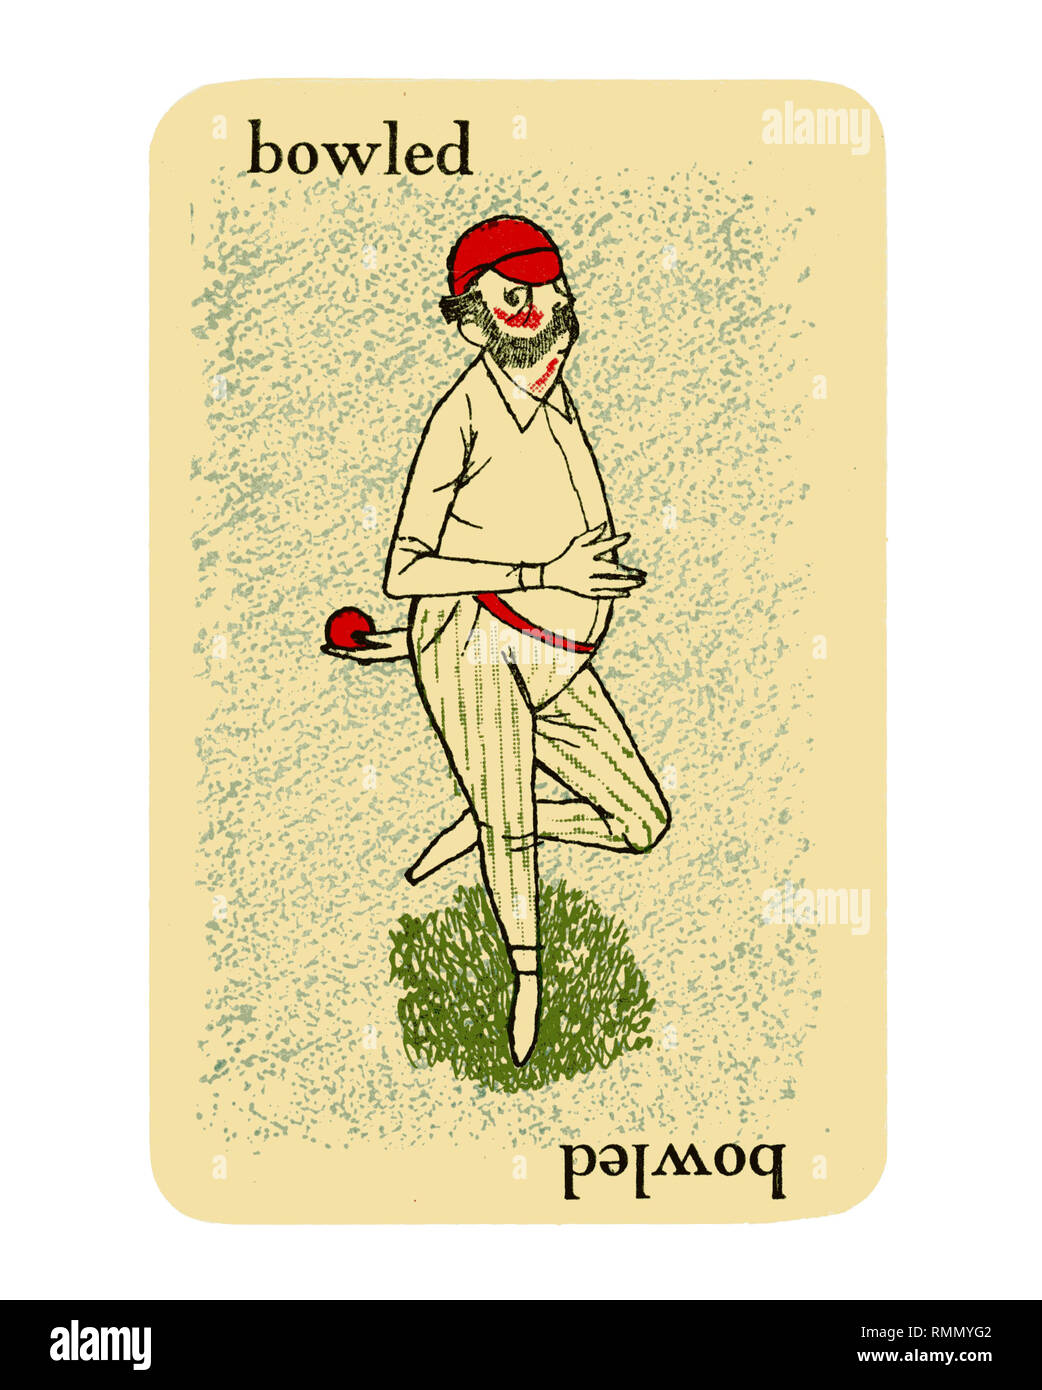 Single card 'BOWLED' from a vintage cricket card game of GOOGLY by Smith & Hallam Ltd of London. Isolated on white background - Stock Image